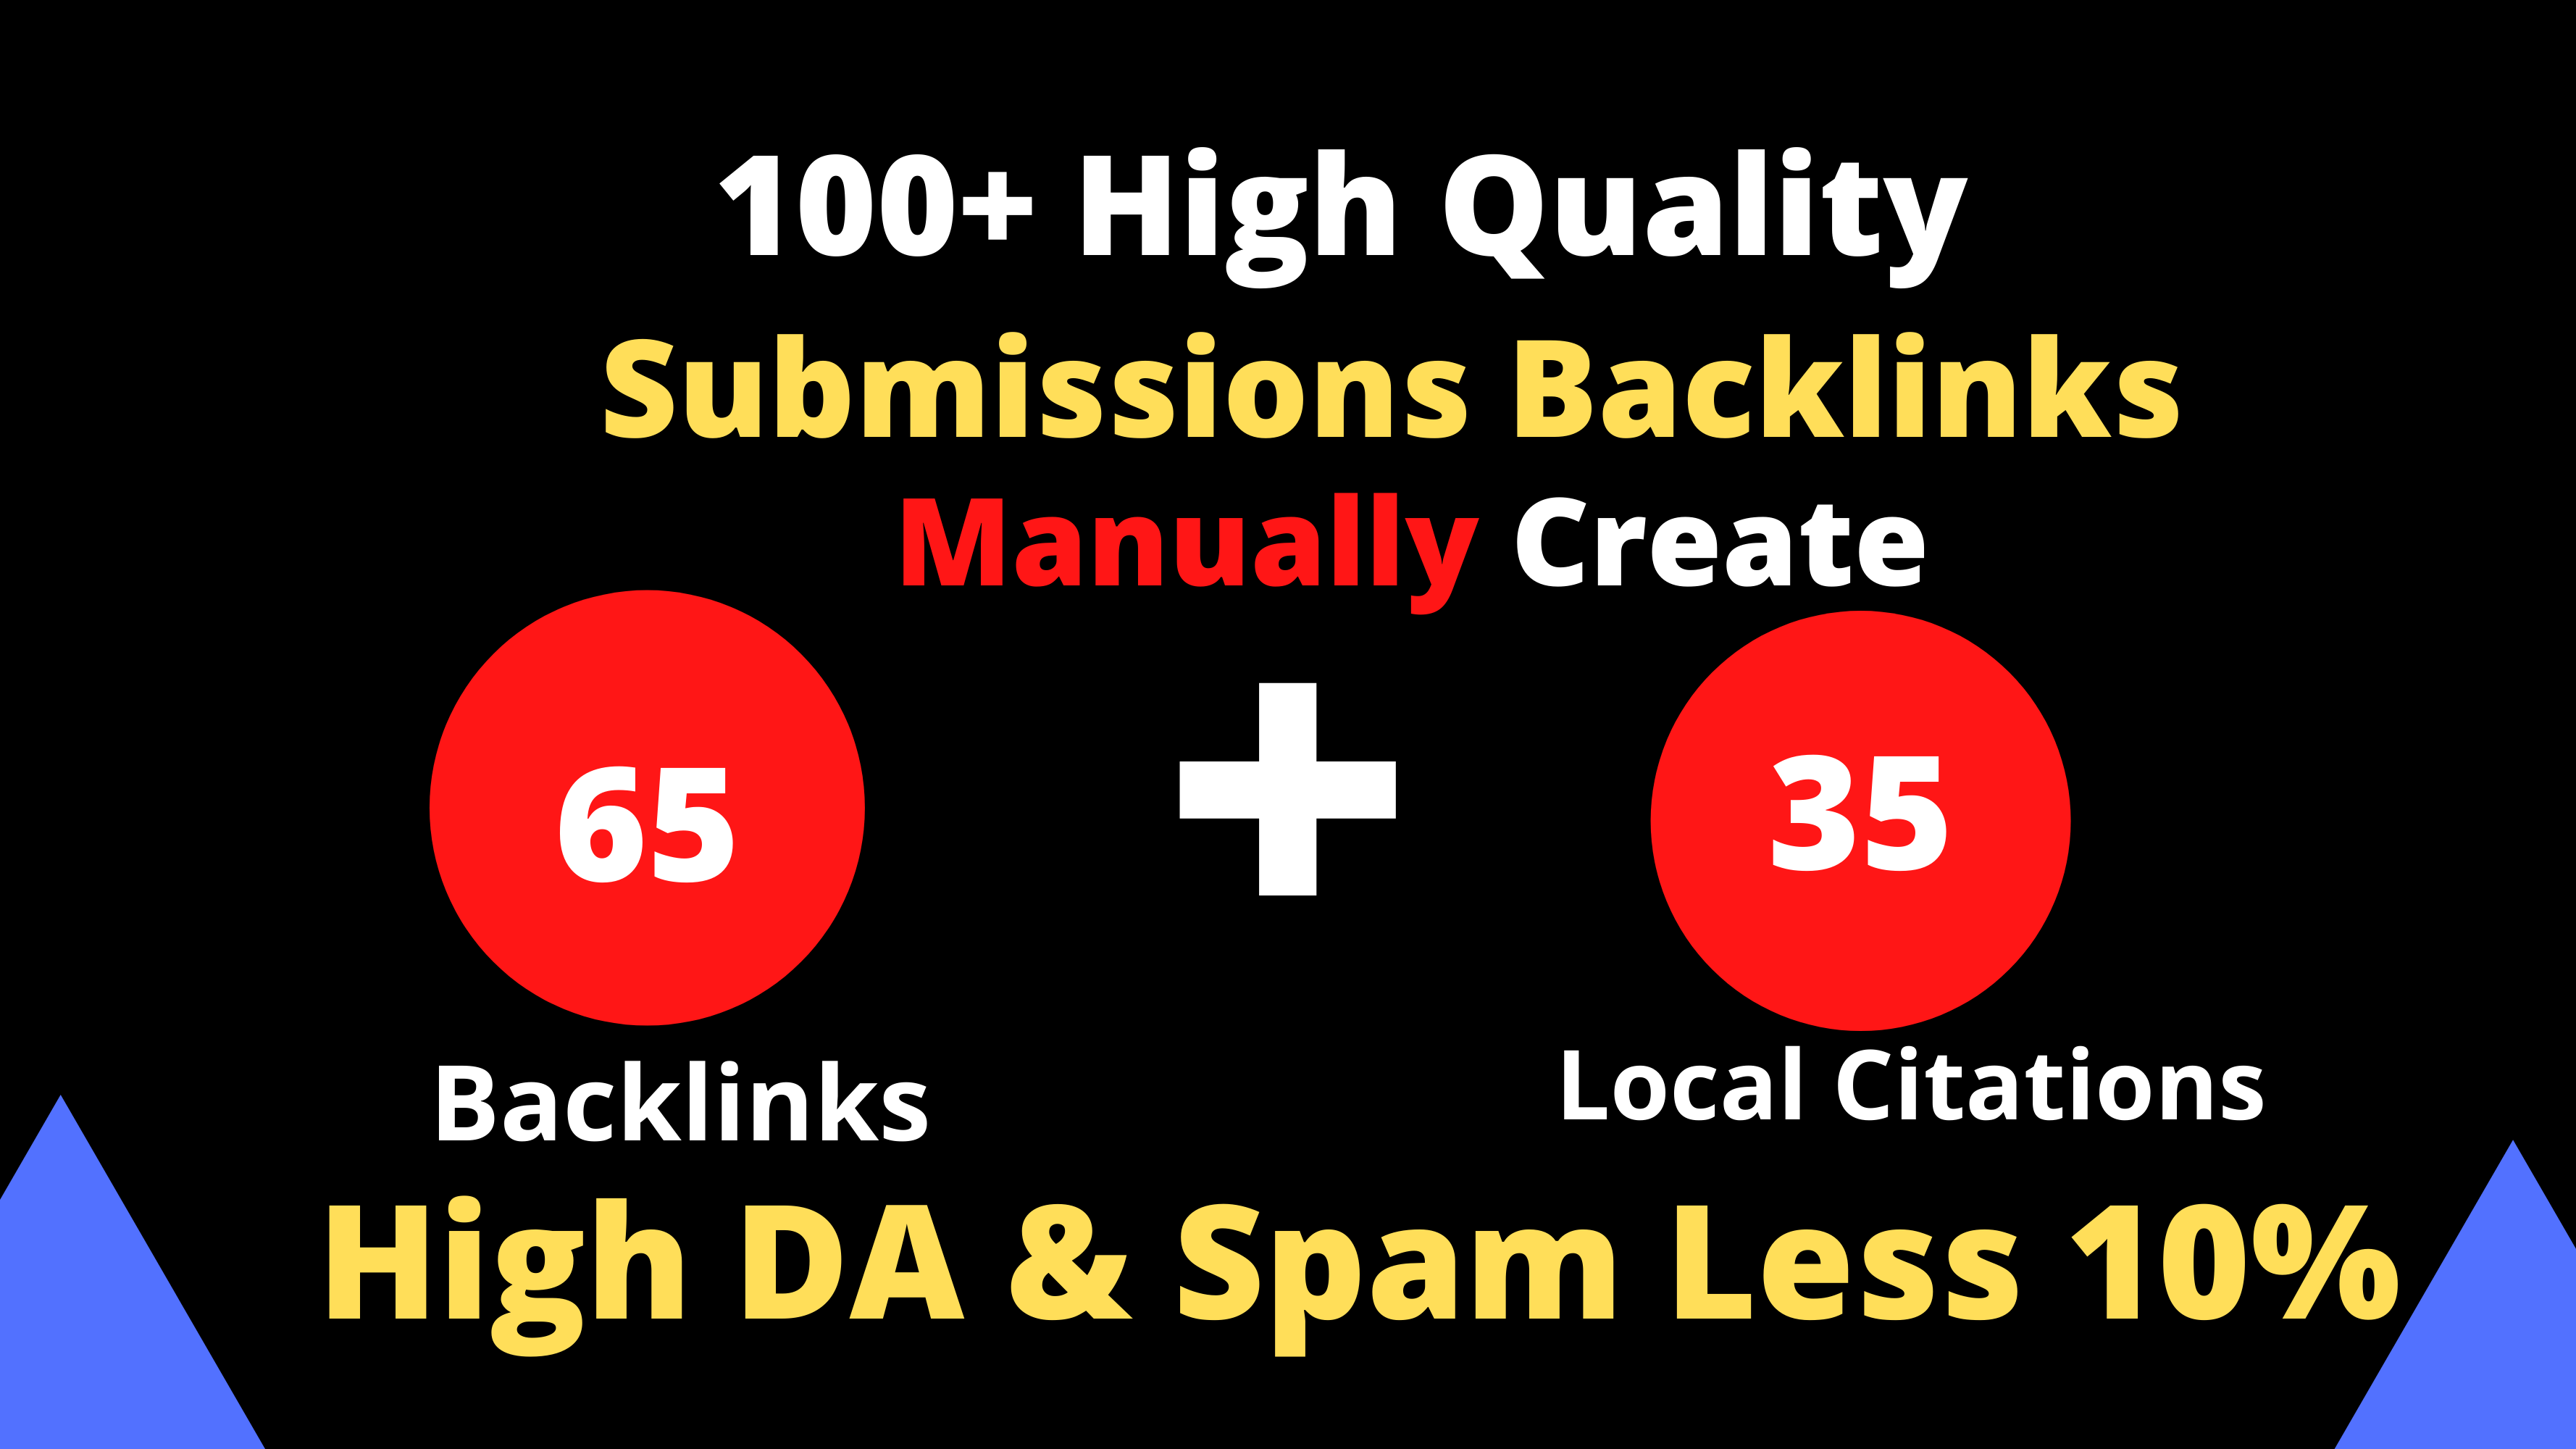 I will Create Manually High DA 65 backlinks+35 Local Citations with spam less 10